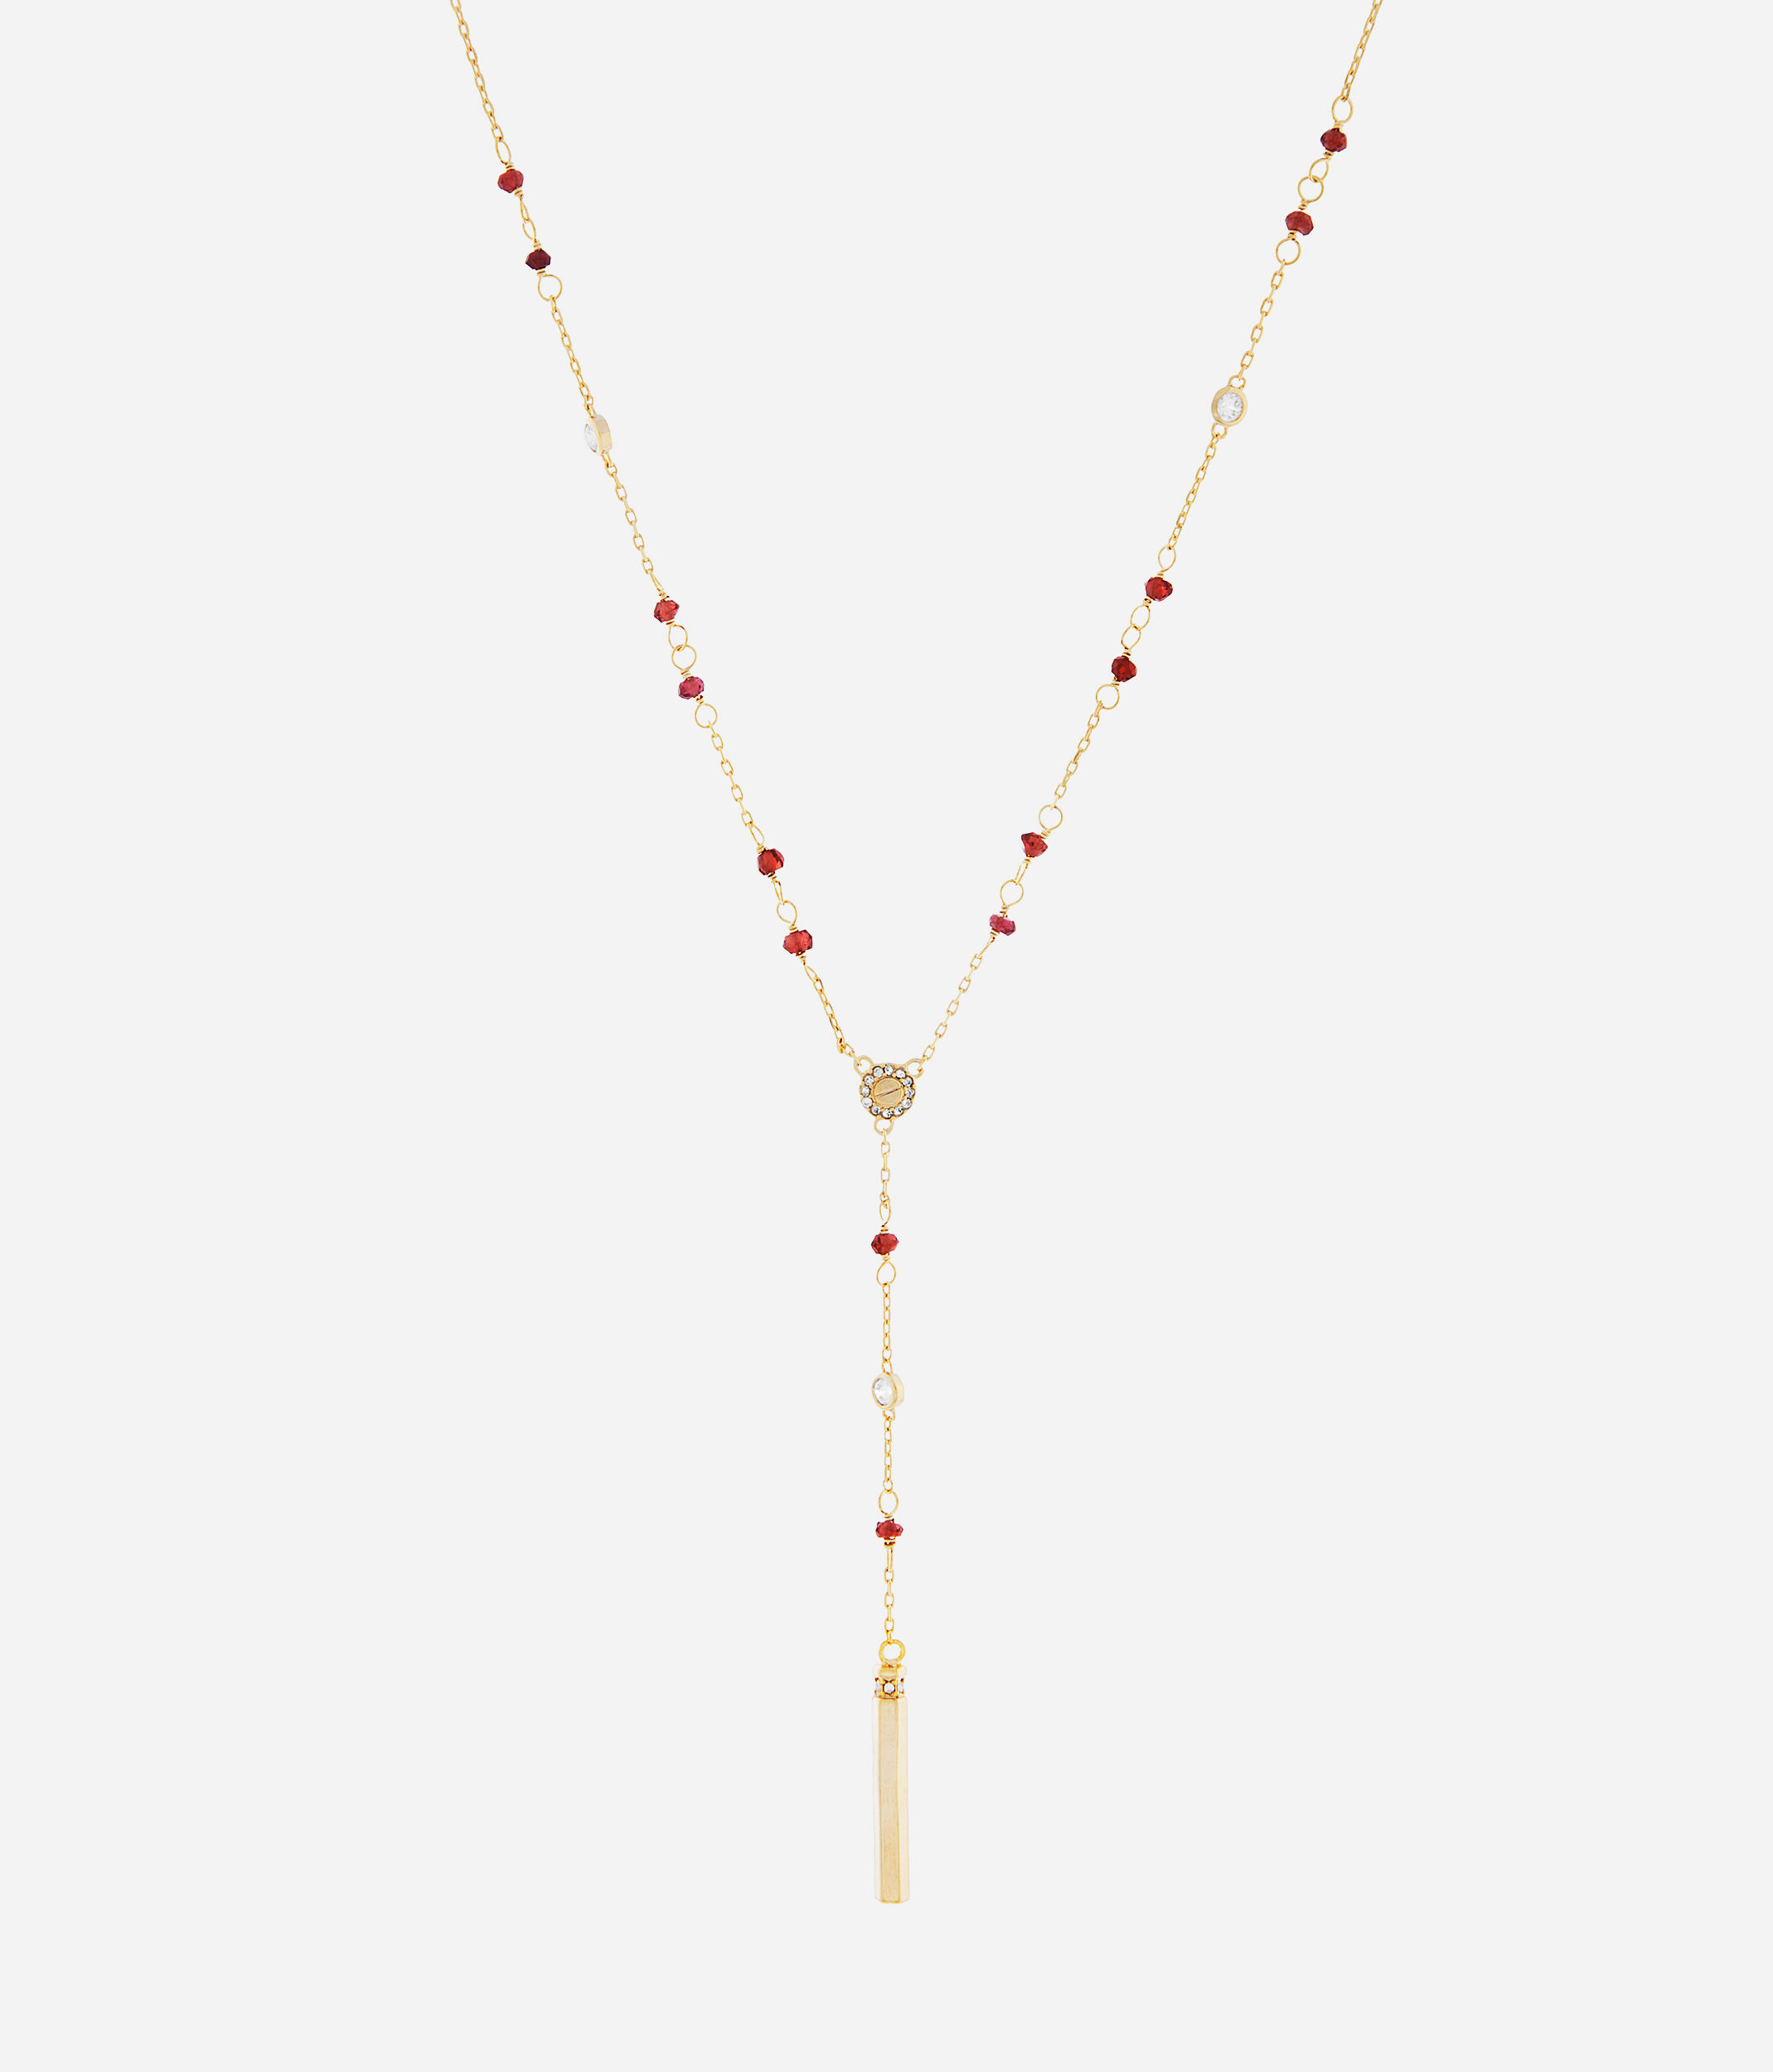 Lyst Henri Bendel Luxe Beaded Y Necklace In Red